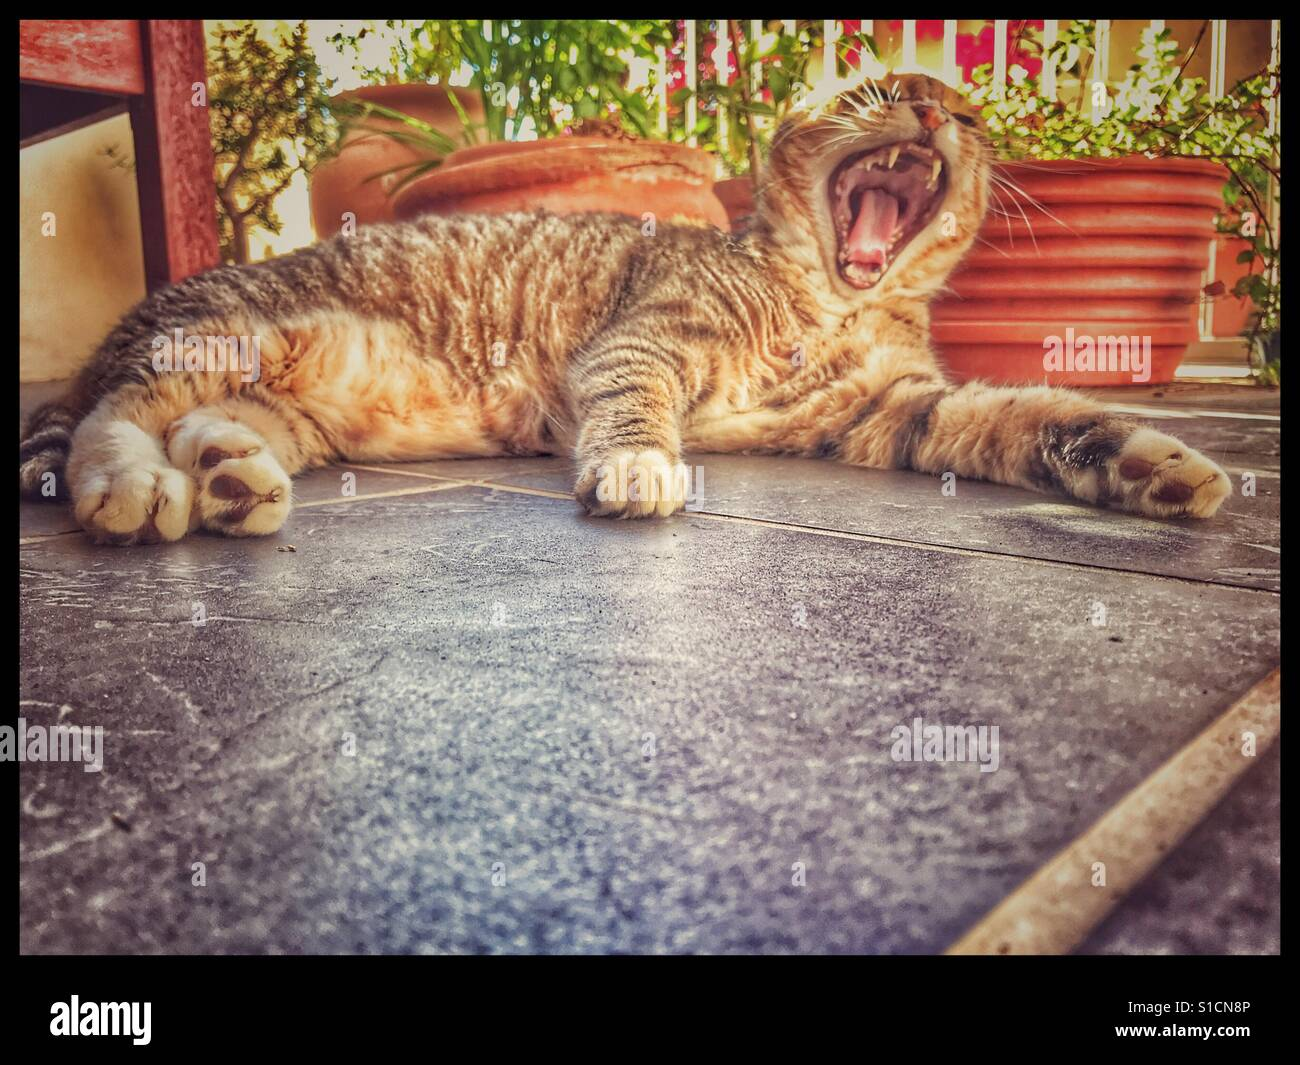 Yawning cat. - Stock Image